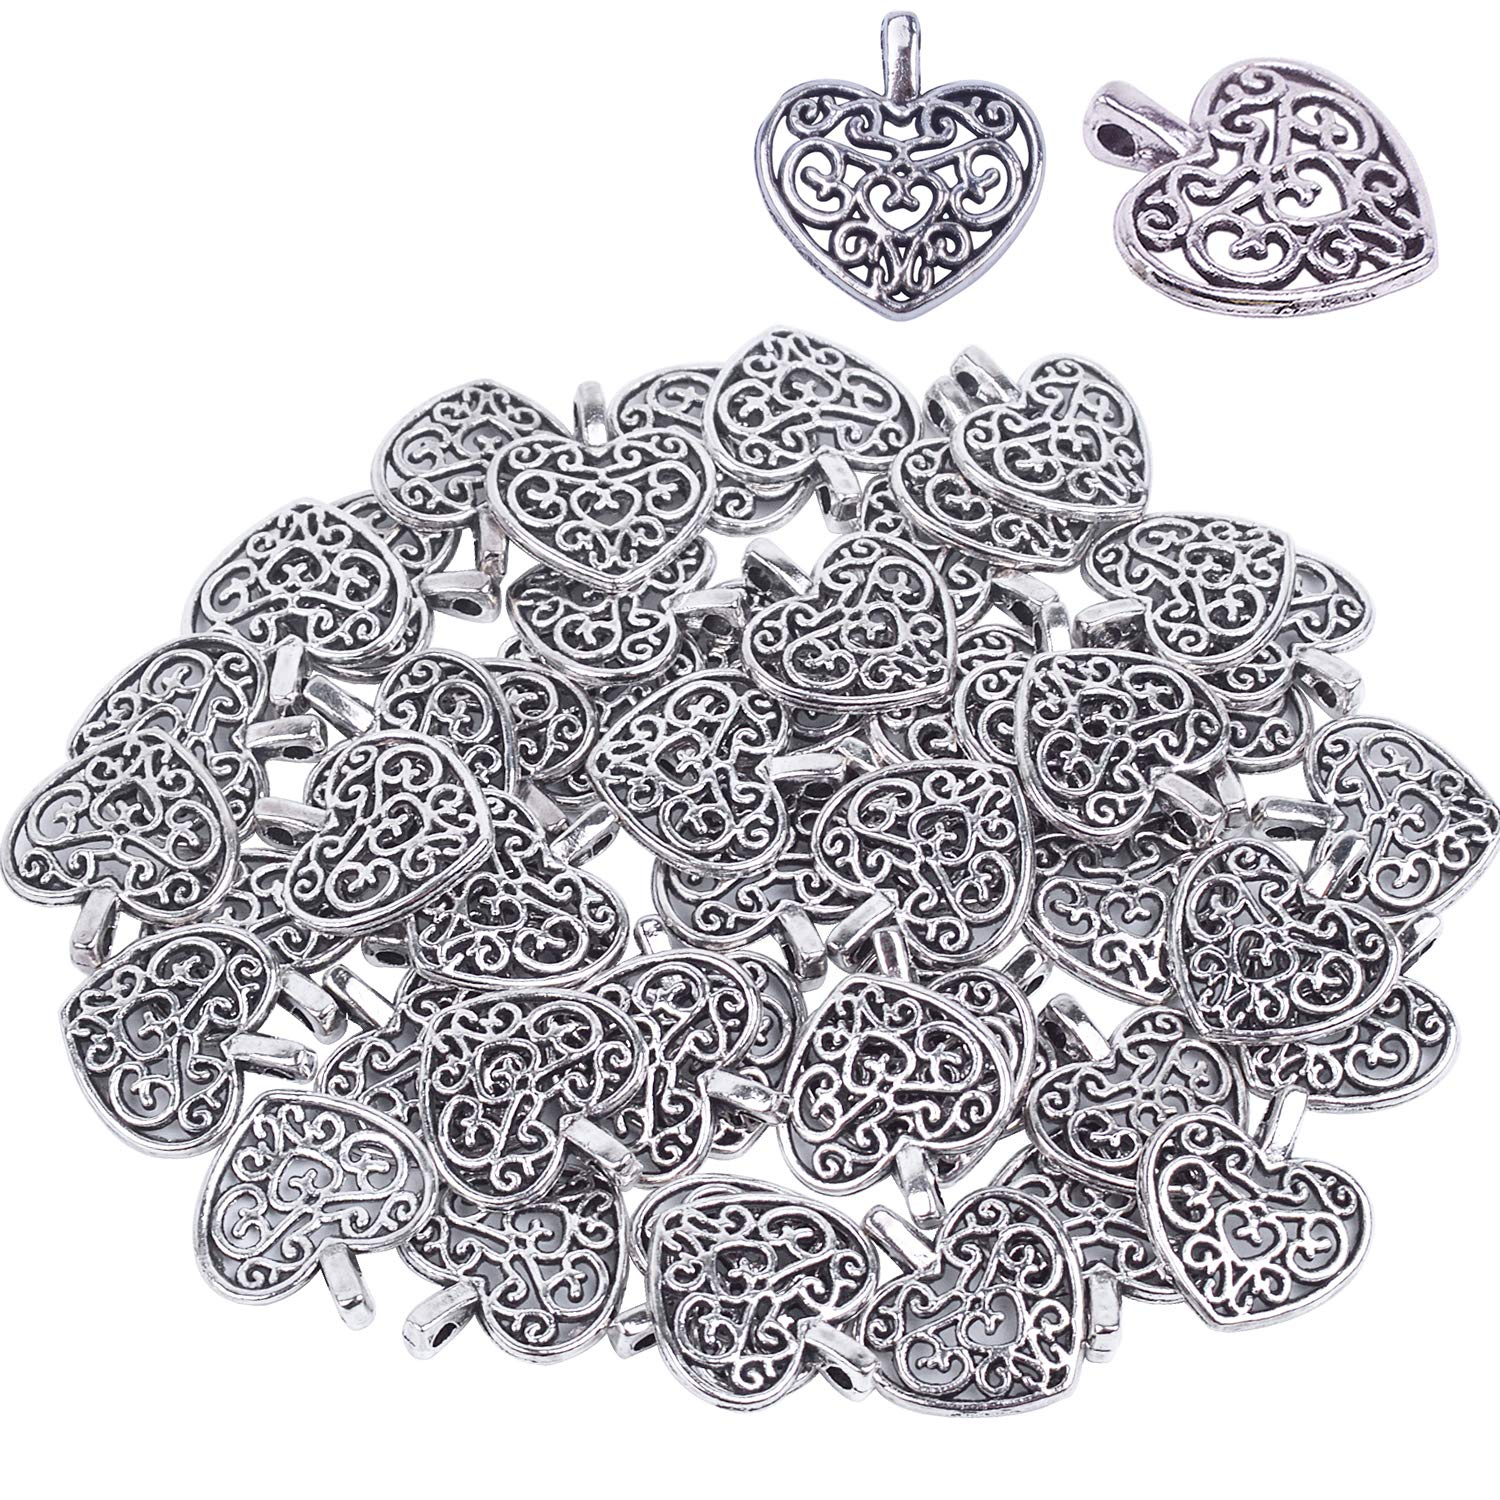 Bonayuanda Pack of 50 Silver Beads DIY Heart Charms Pendants Bracelet Necklace Jewelry Making Accessory(Silver) 4336819455